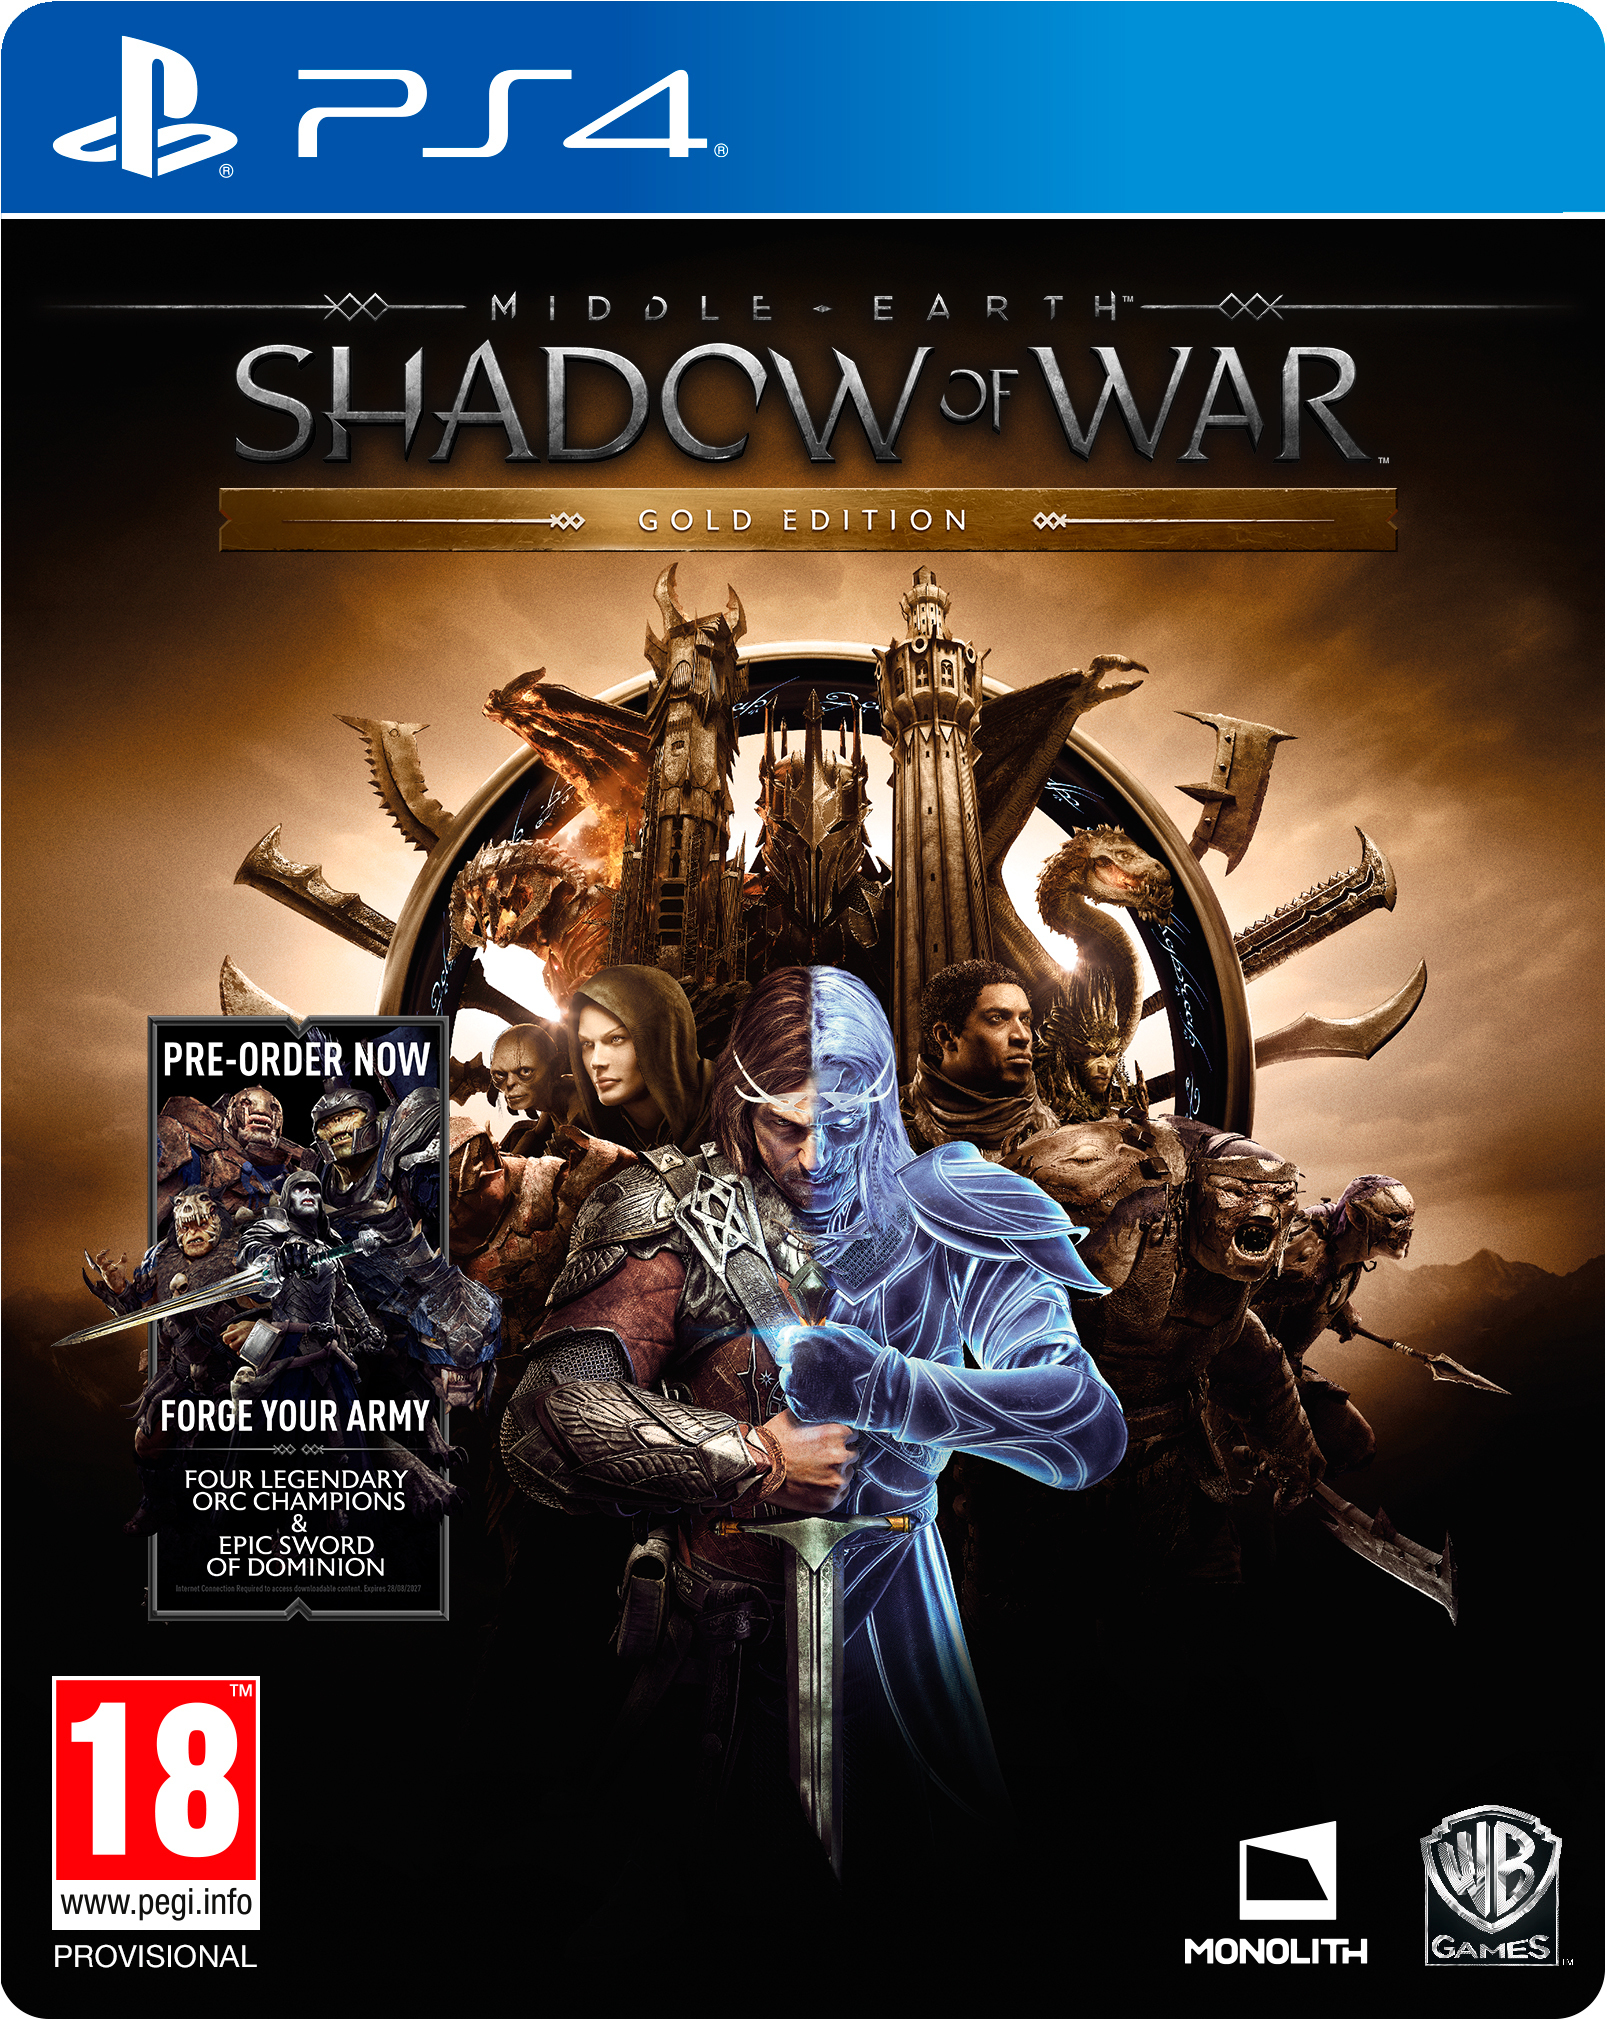 Middle-earth: Shadow of War (Средиземье: Тени Войны) – Gold Edition